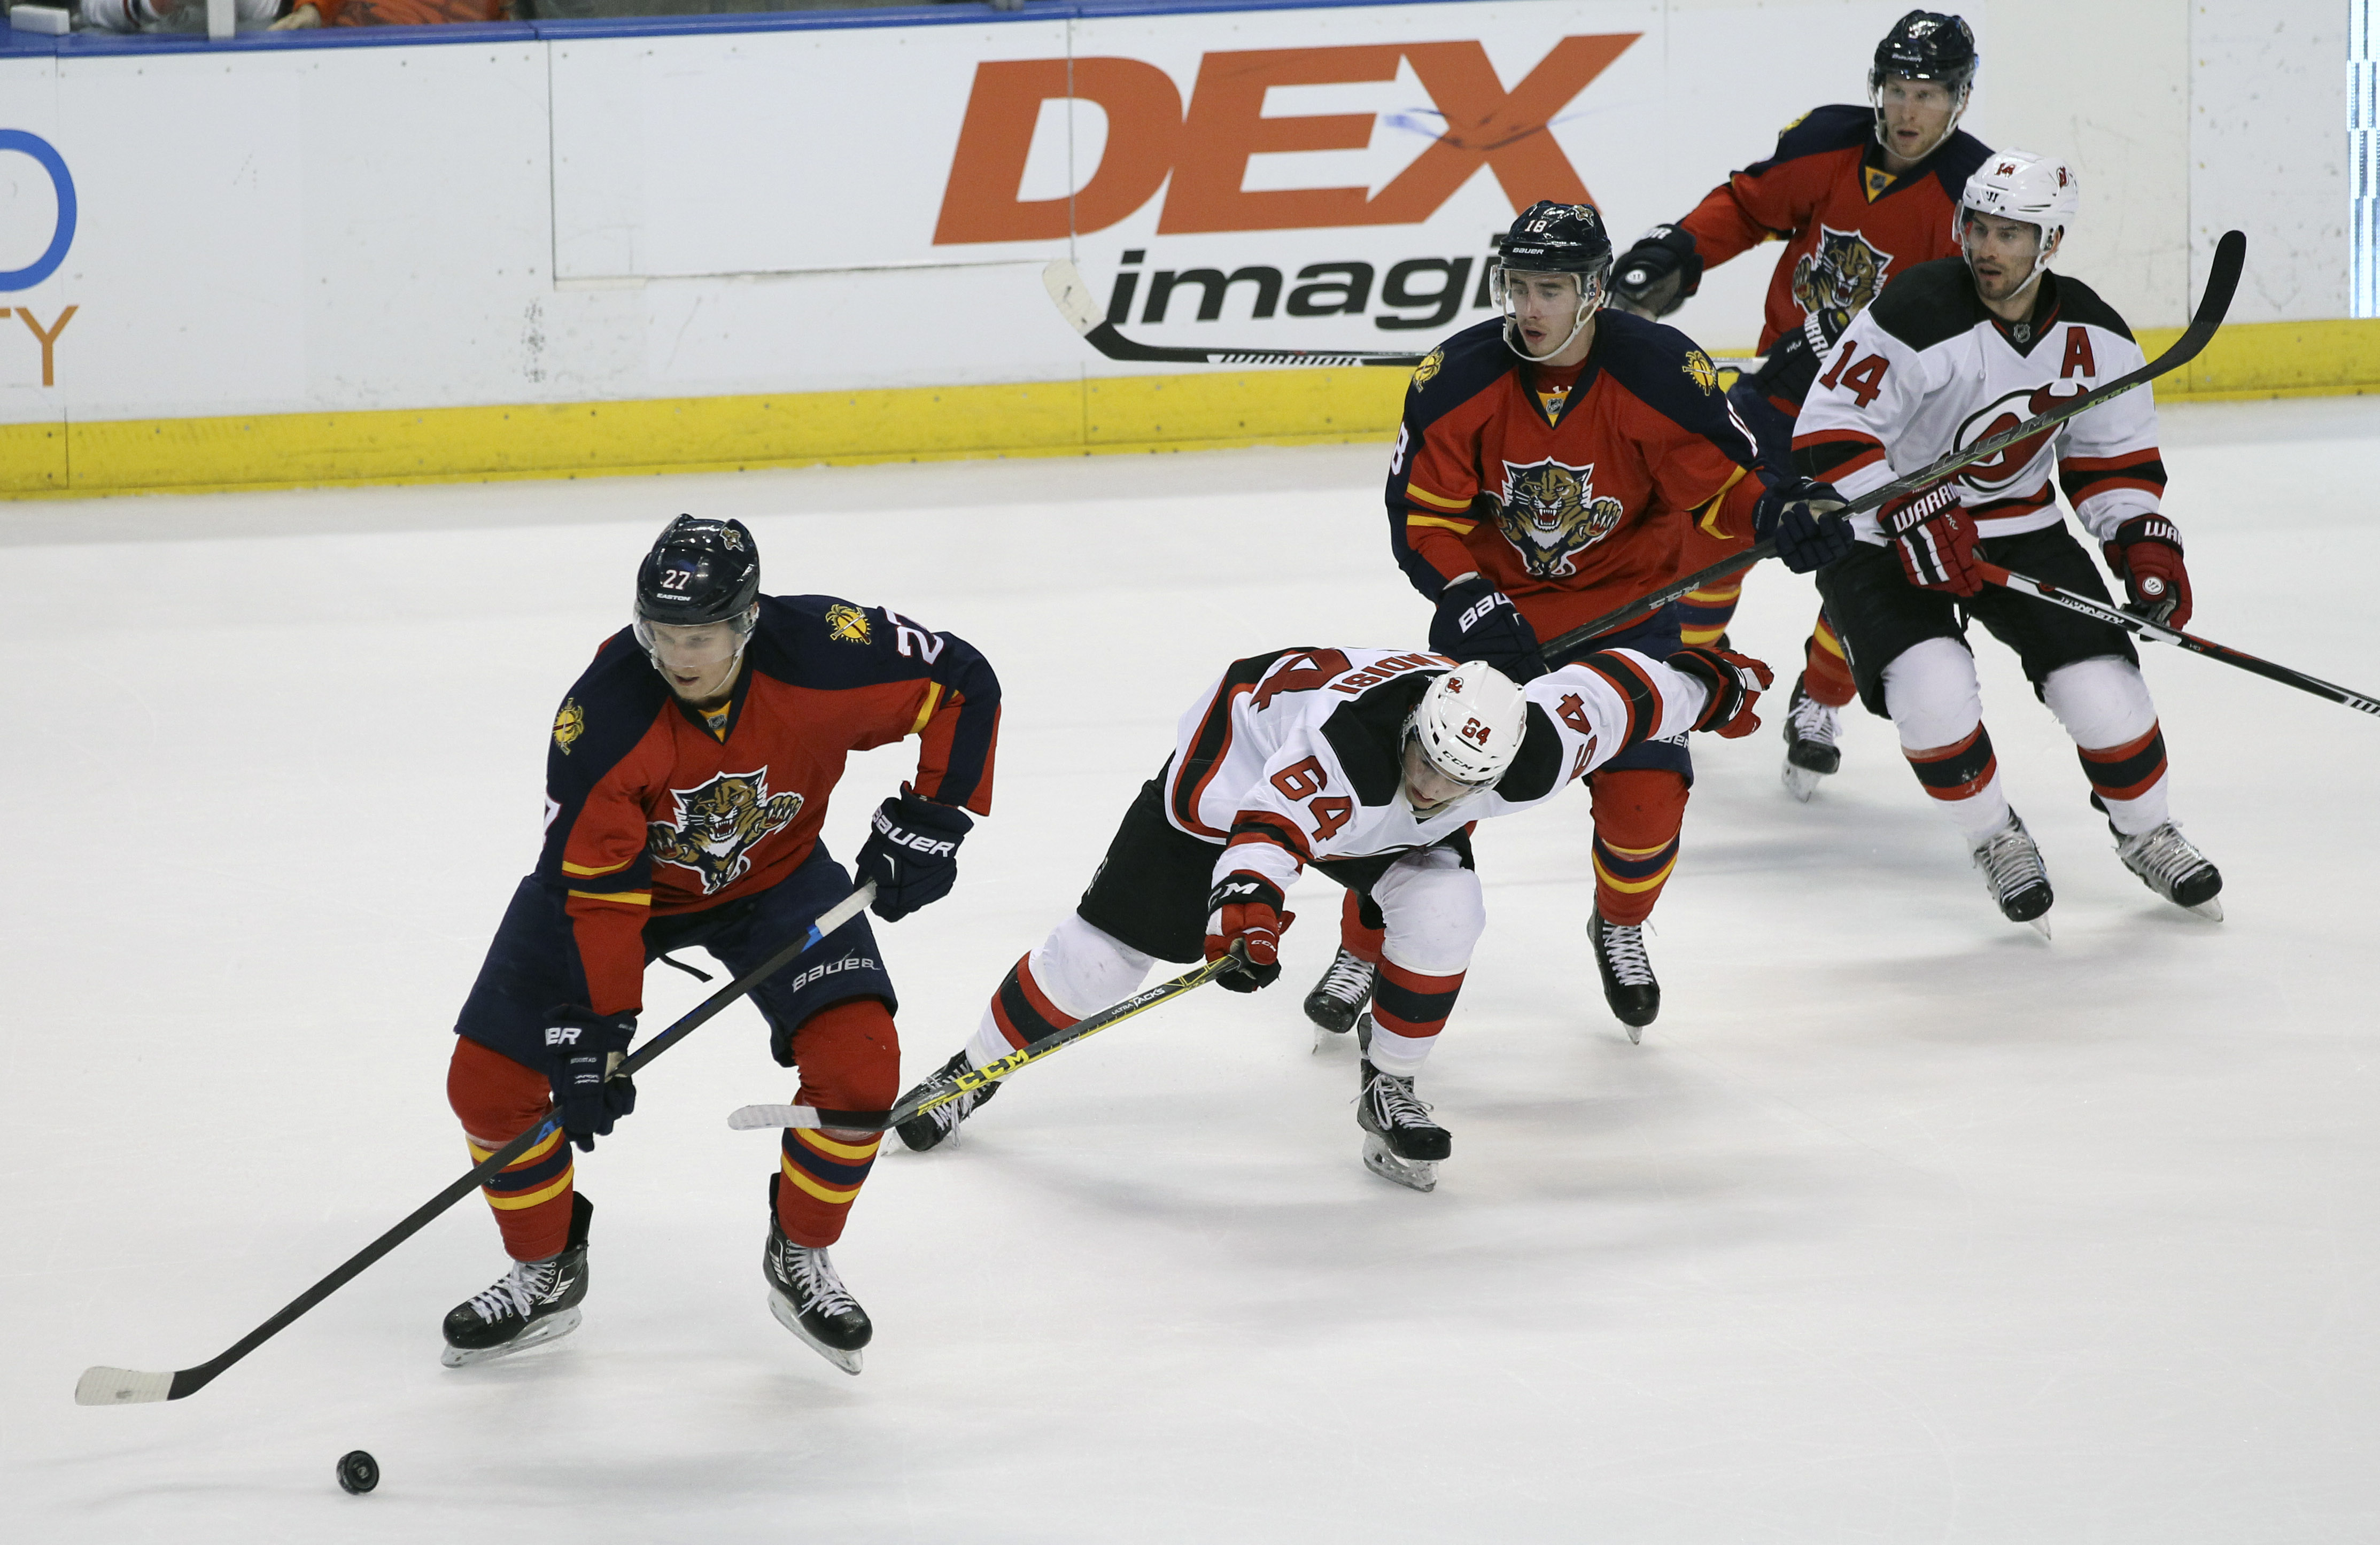 Florida Panthers Nick Bjugstad, left, moves the puck as New Jersey Devils' Joseph Blandisi (64) defends during the first period of an NHL hockey game, Thursday, March 31, 2016, in Sunrise, Fla. (AP Photo/Luis M. Alvarez)